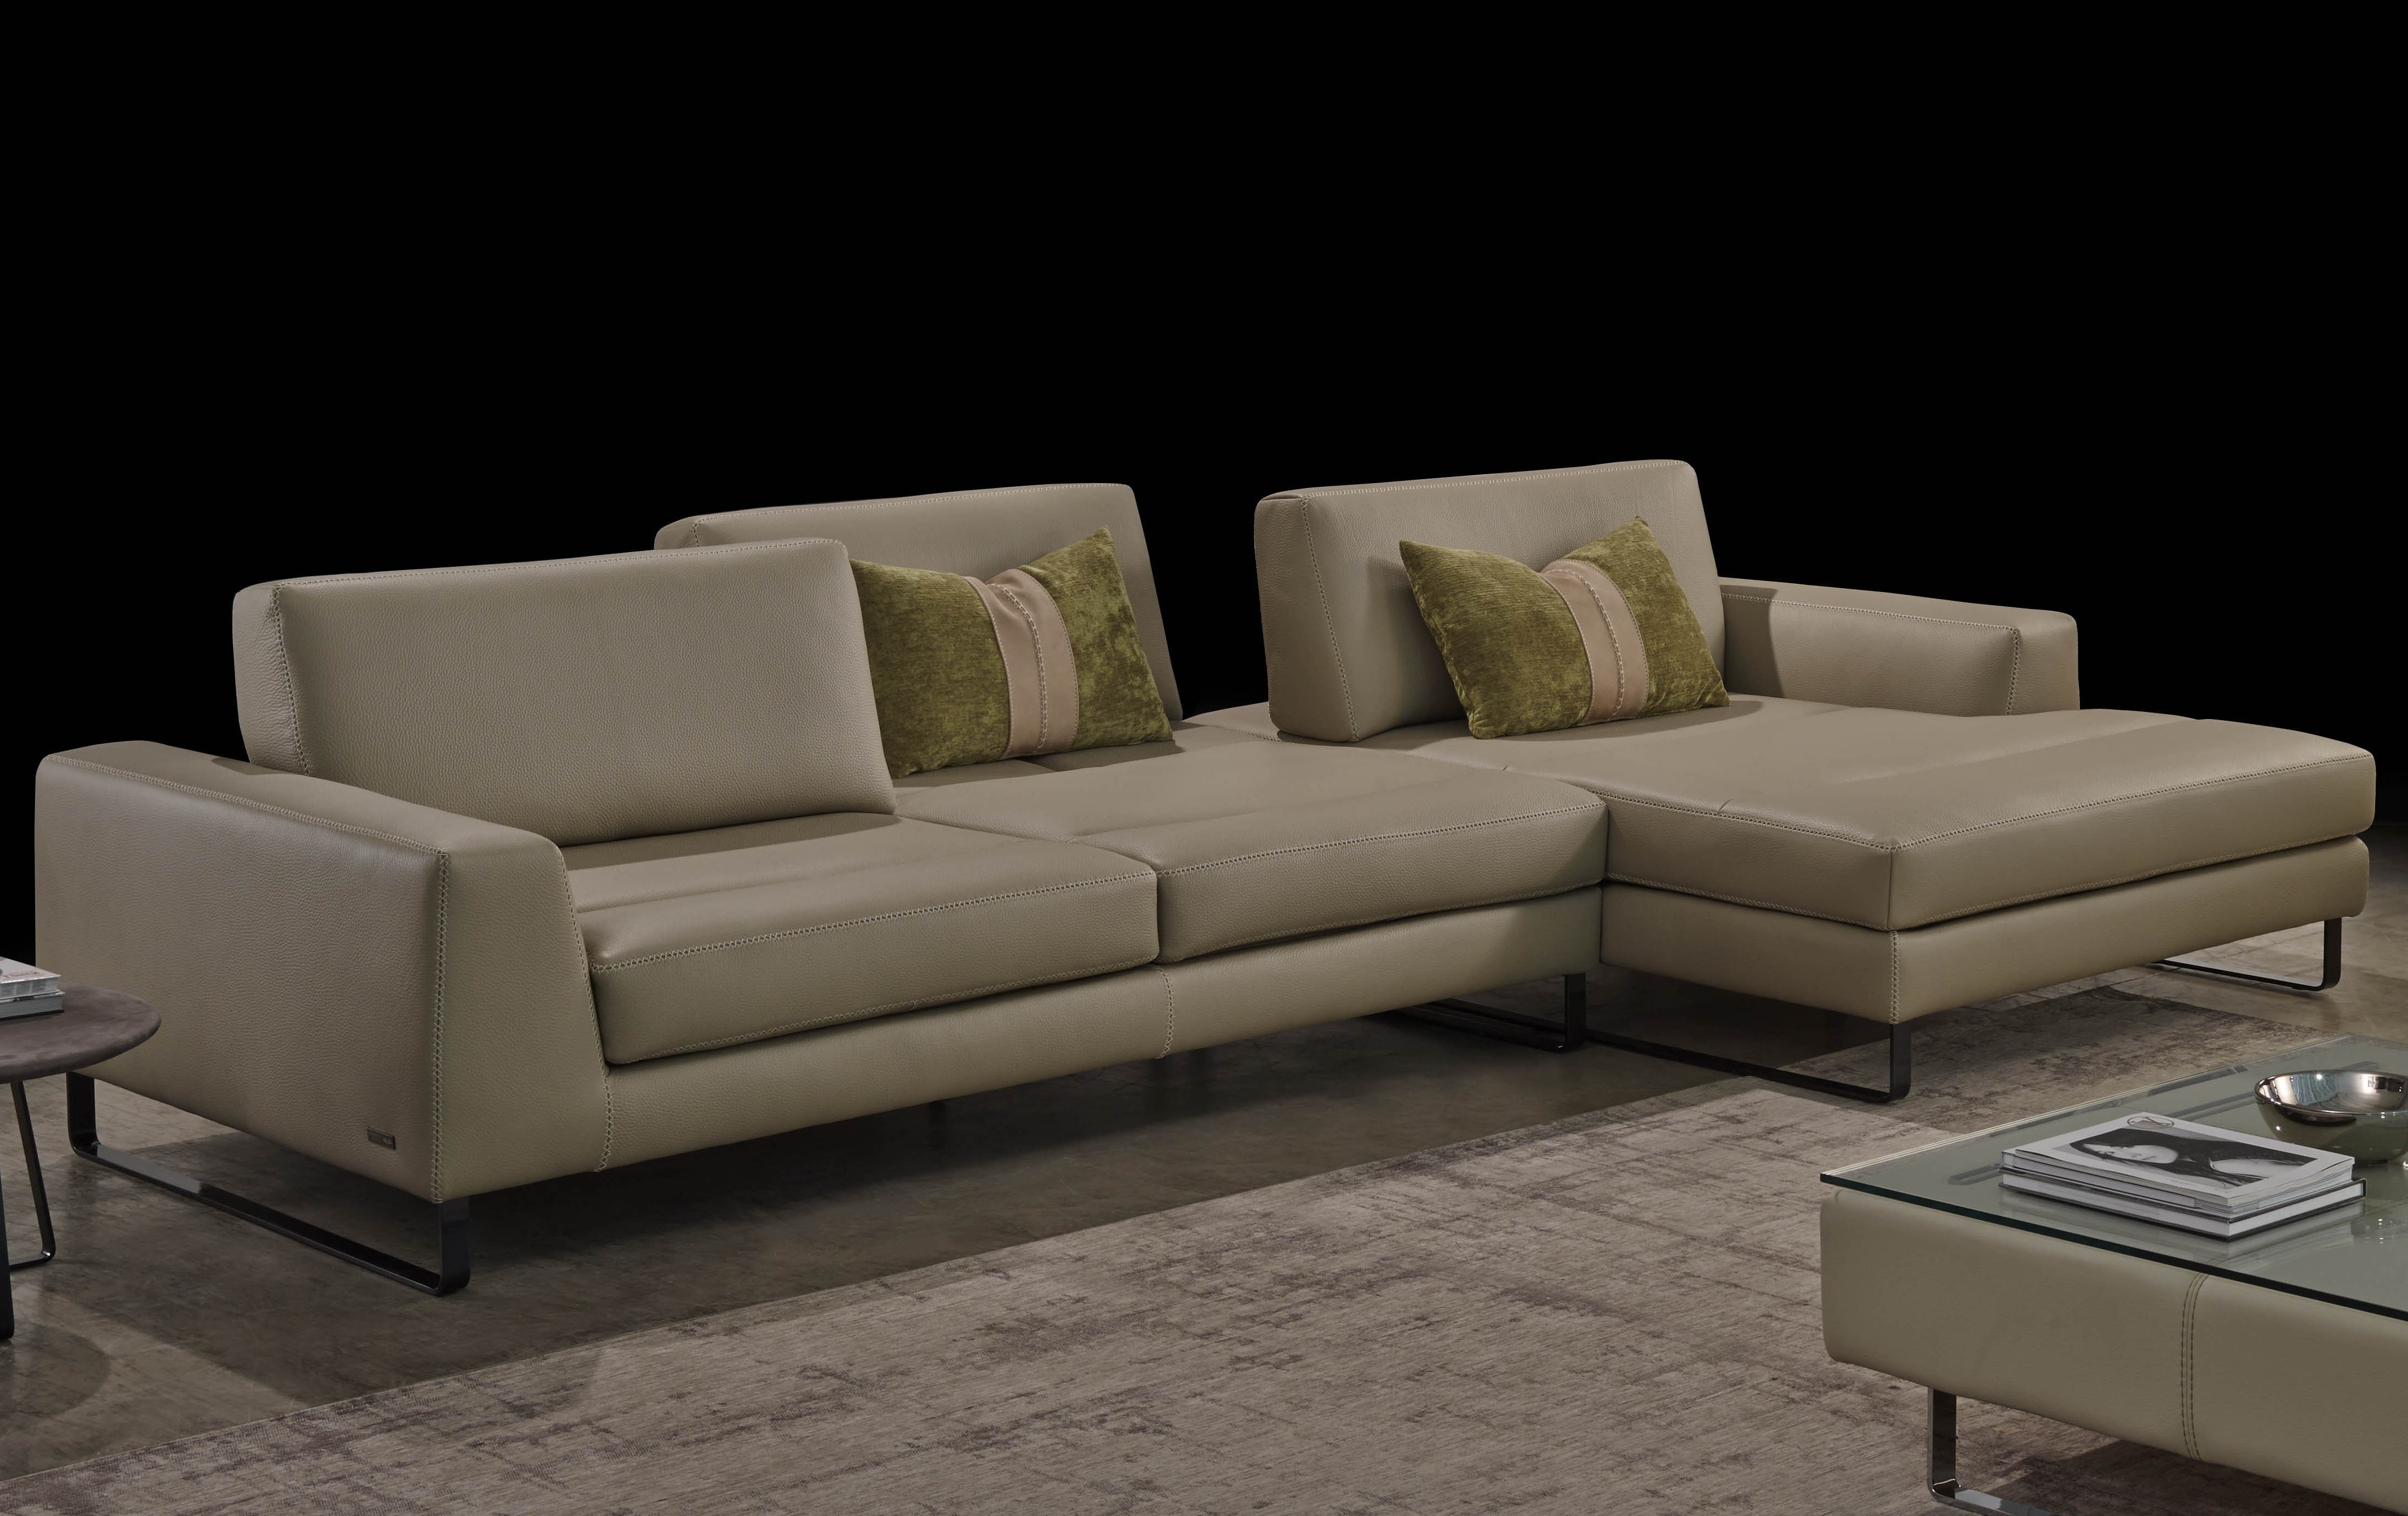 Widely Used Urban Sectional, Gamma International Italy – Italmoda Furniture Store For Nashua Nh Sectional Sofas (View 20 of 20)